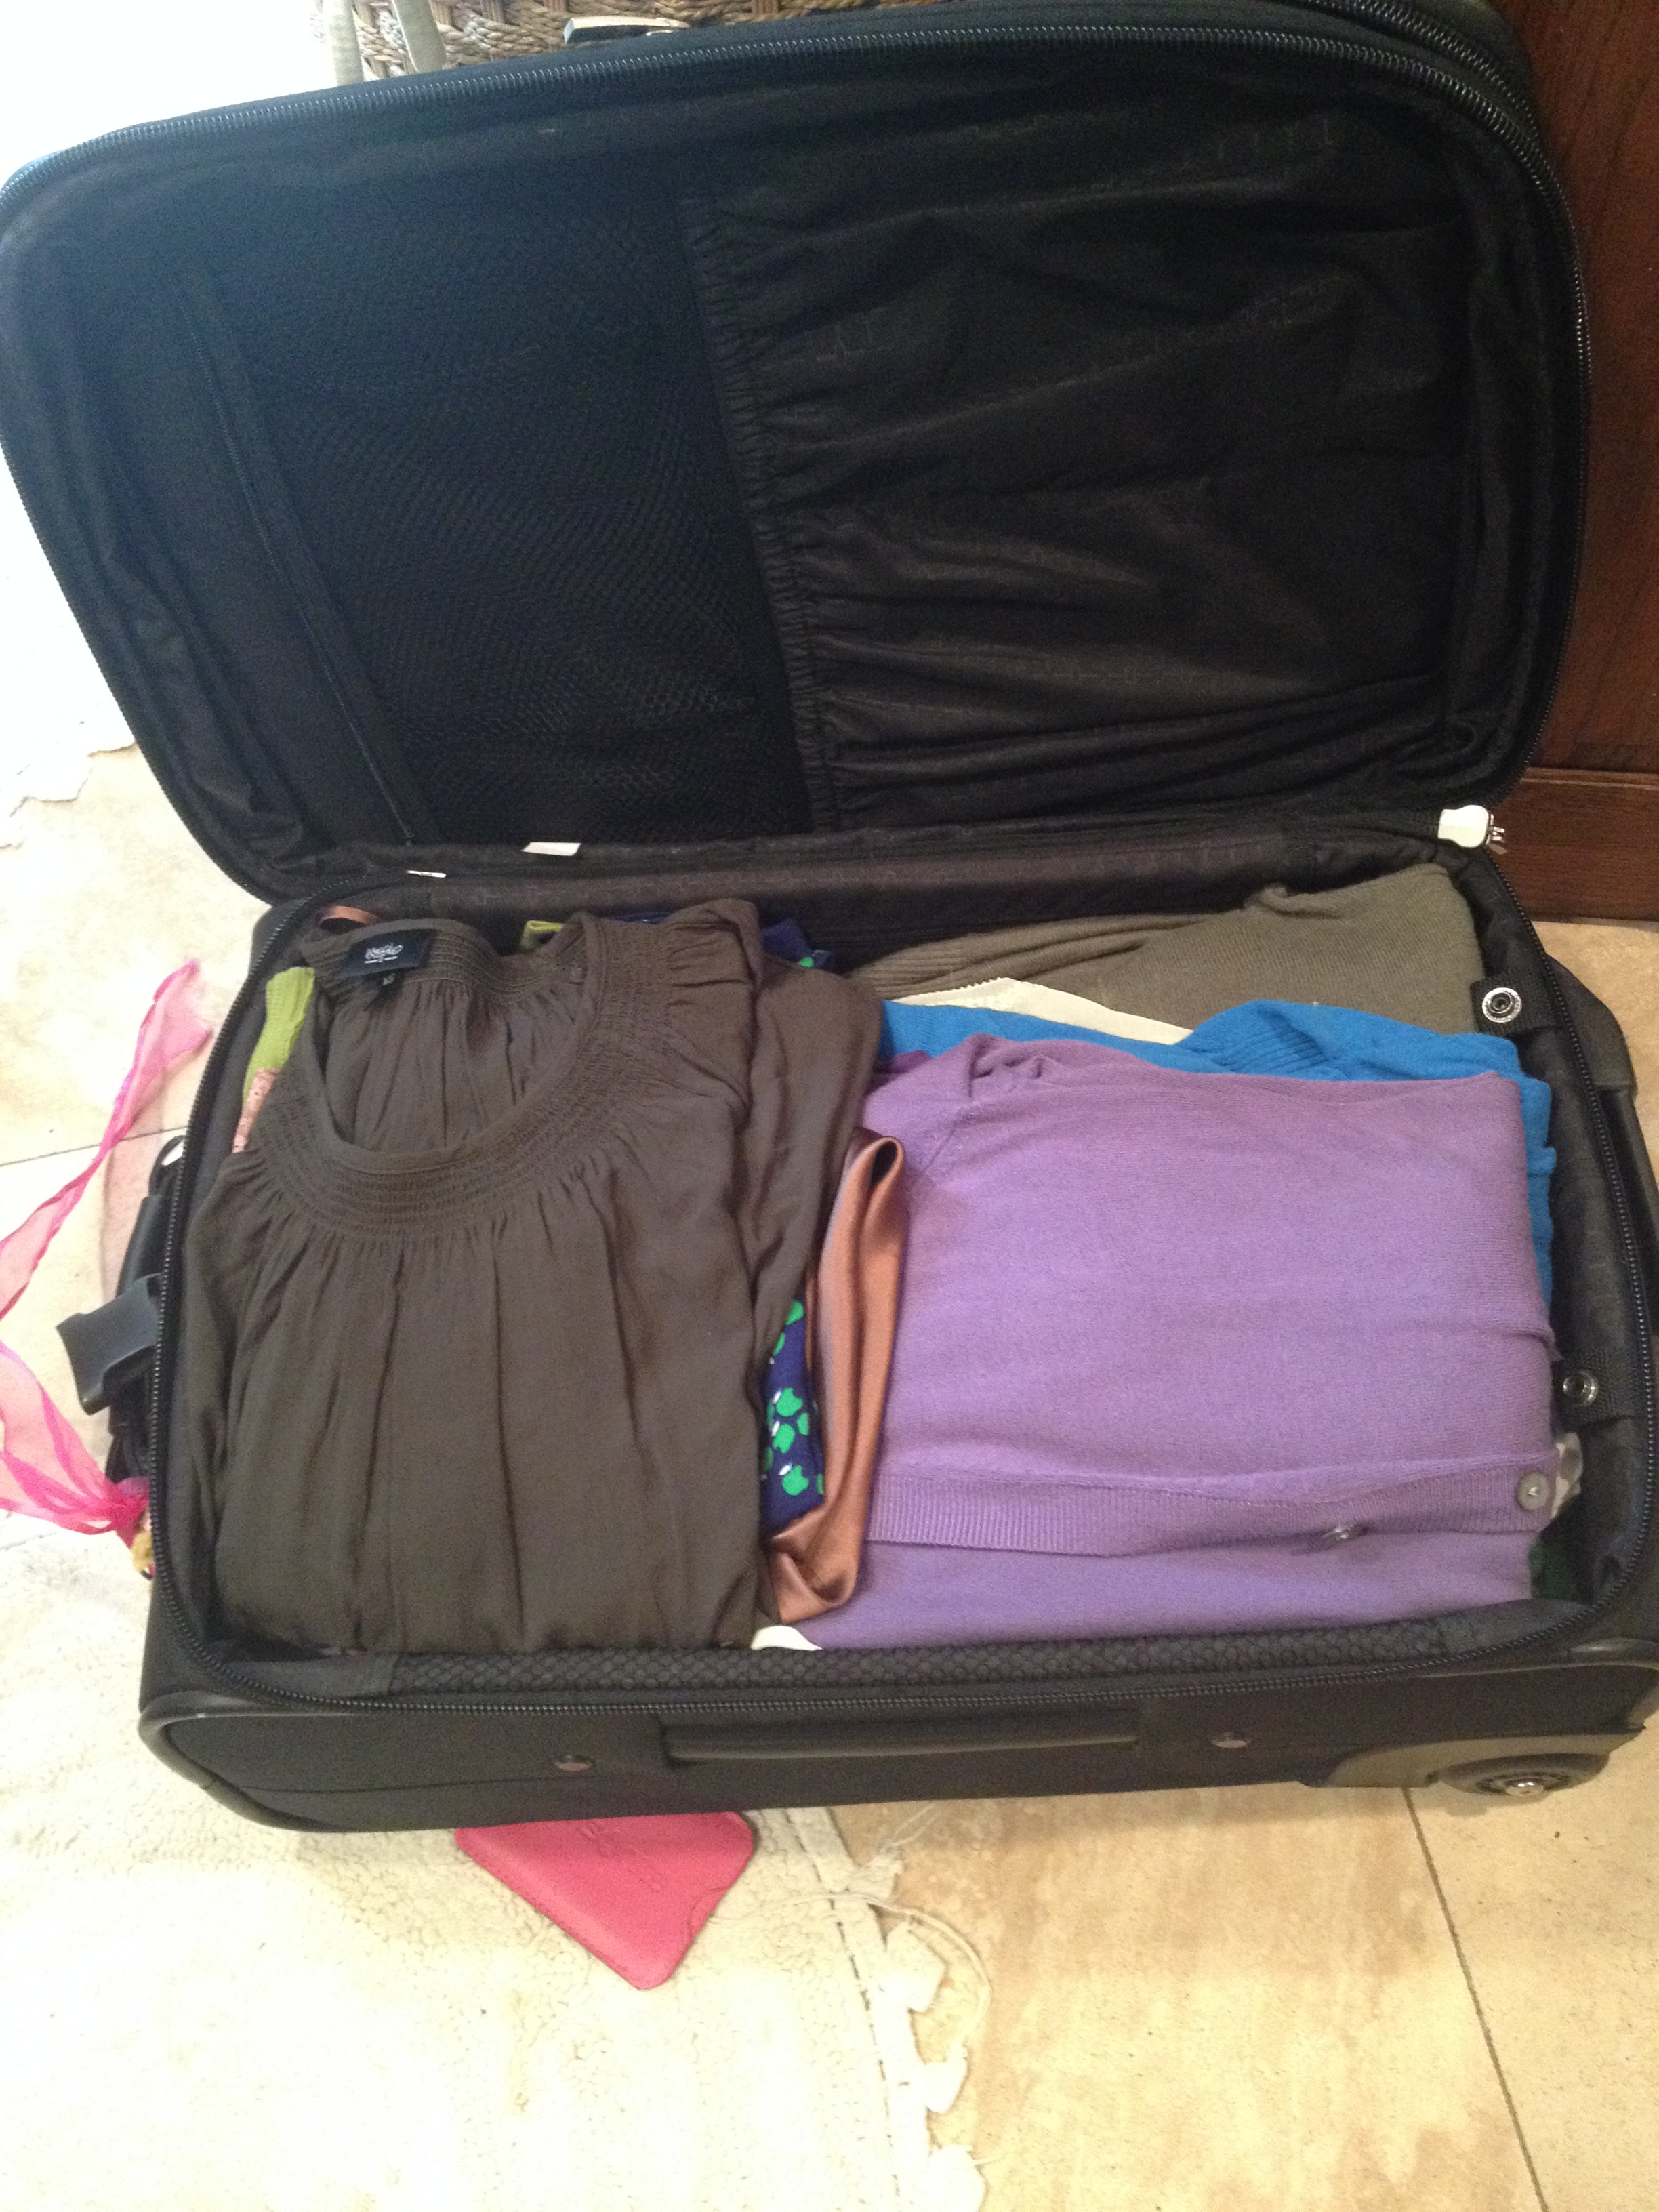 suitcase without packing cubes 1.JPG